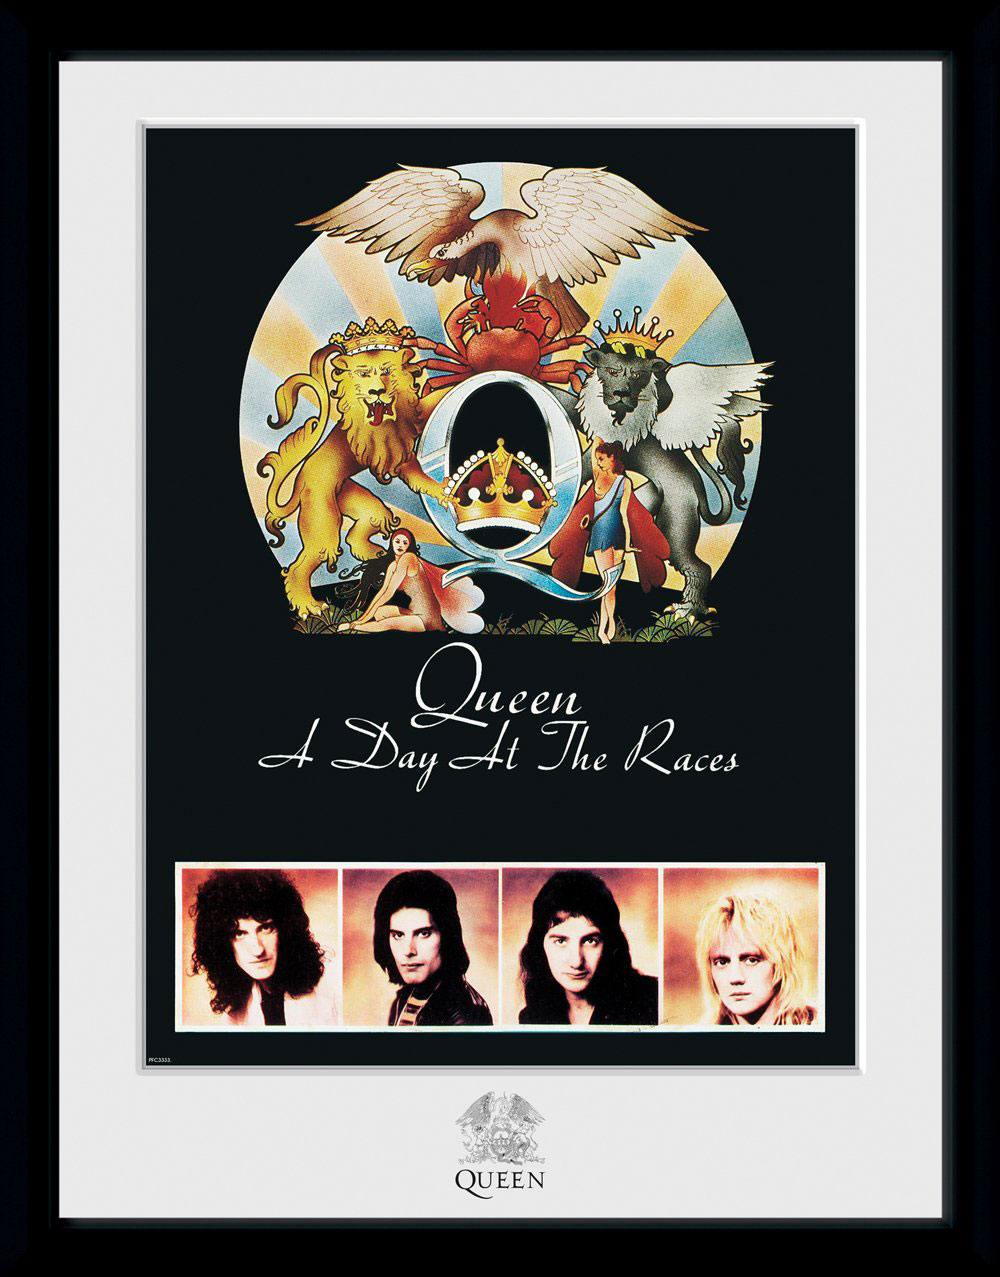 Queen Framed Poster Day At The Races (Bravado)